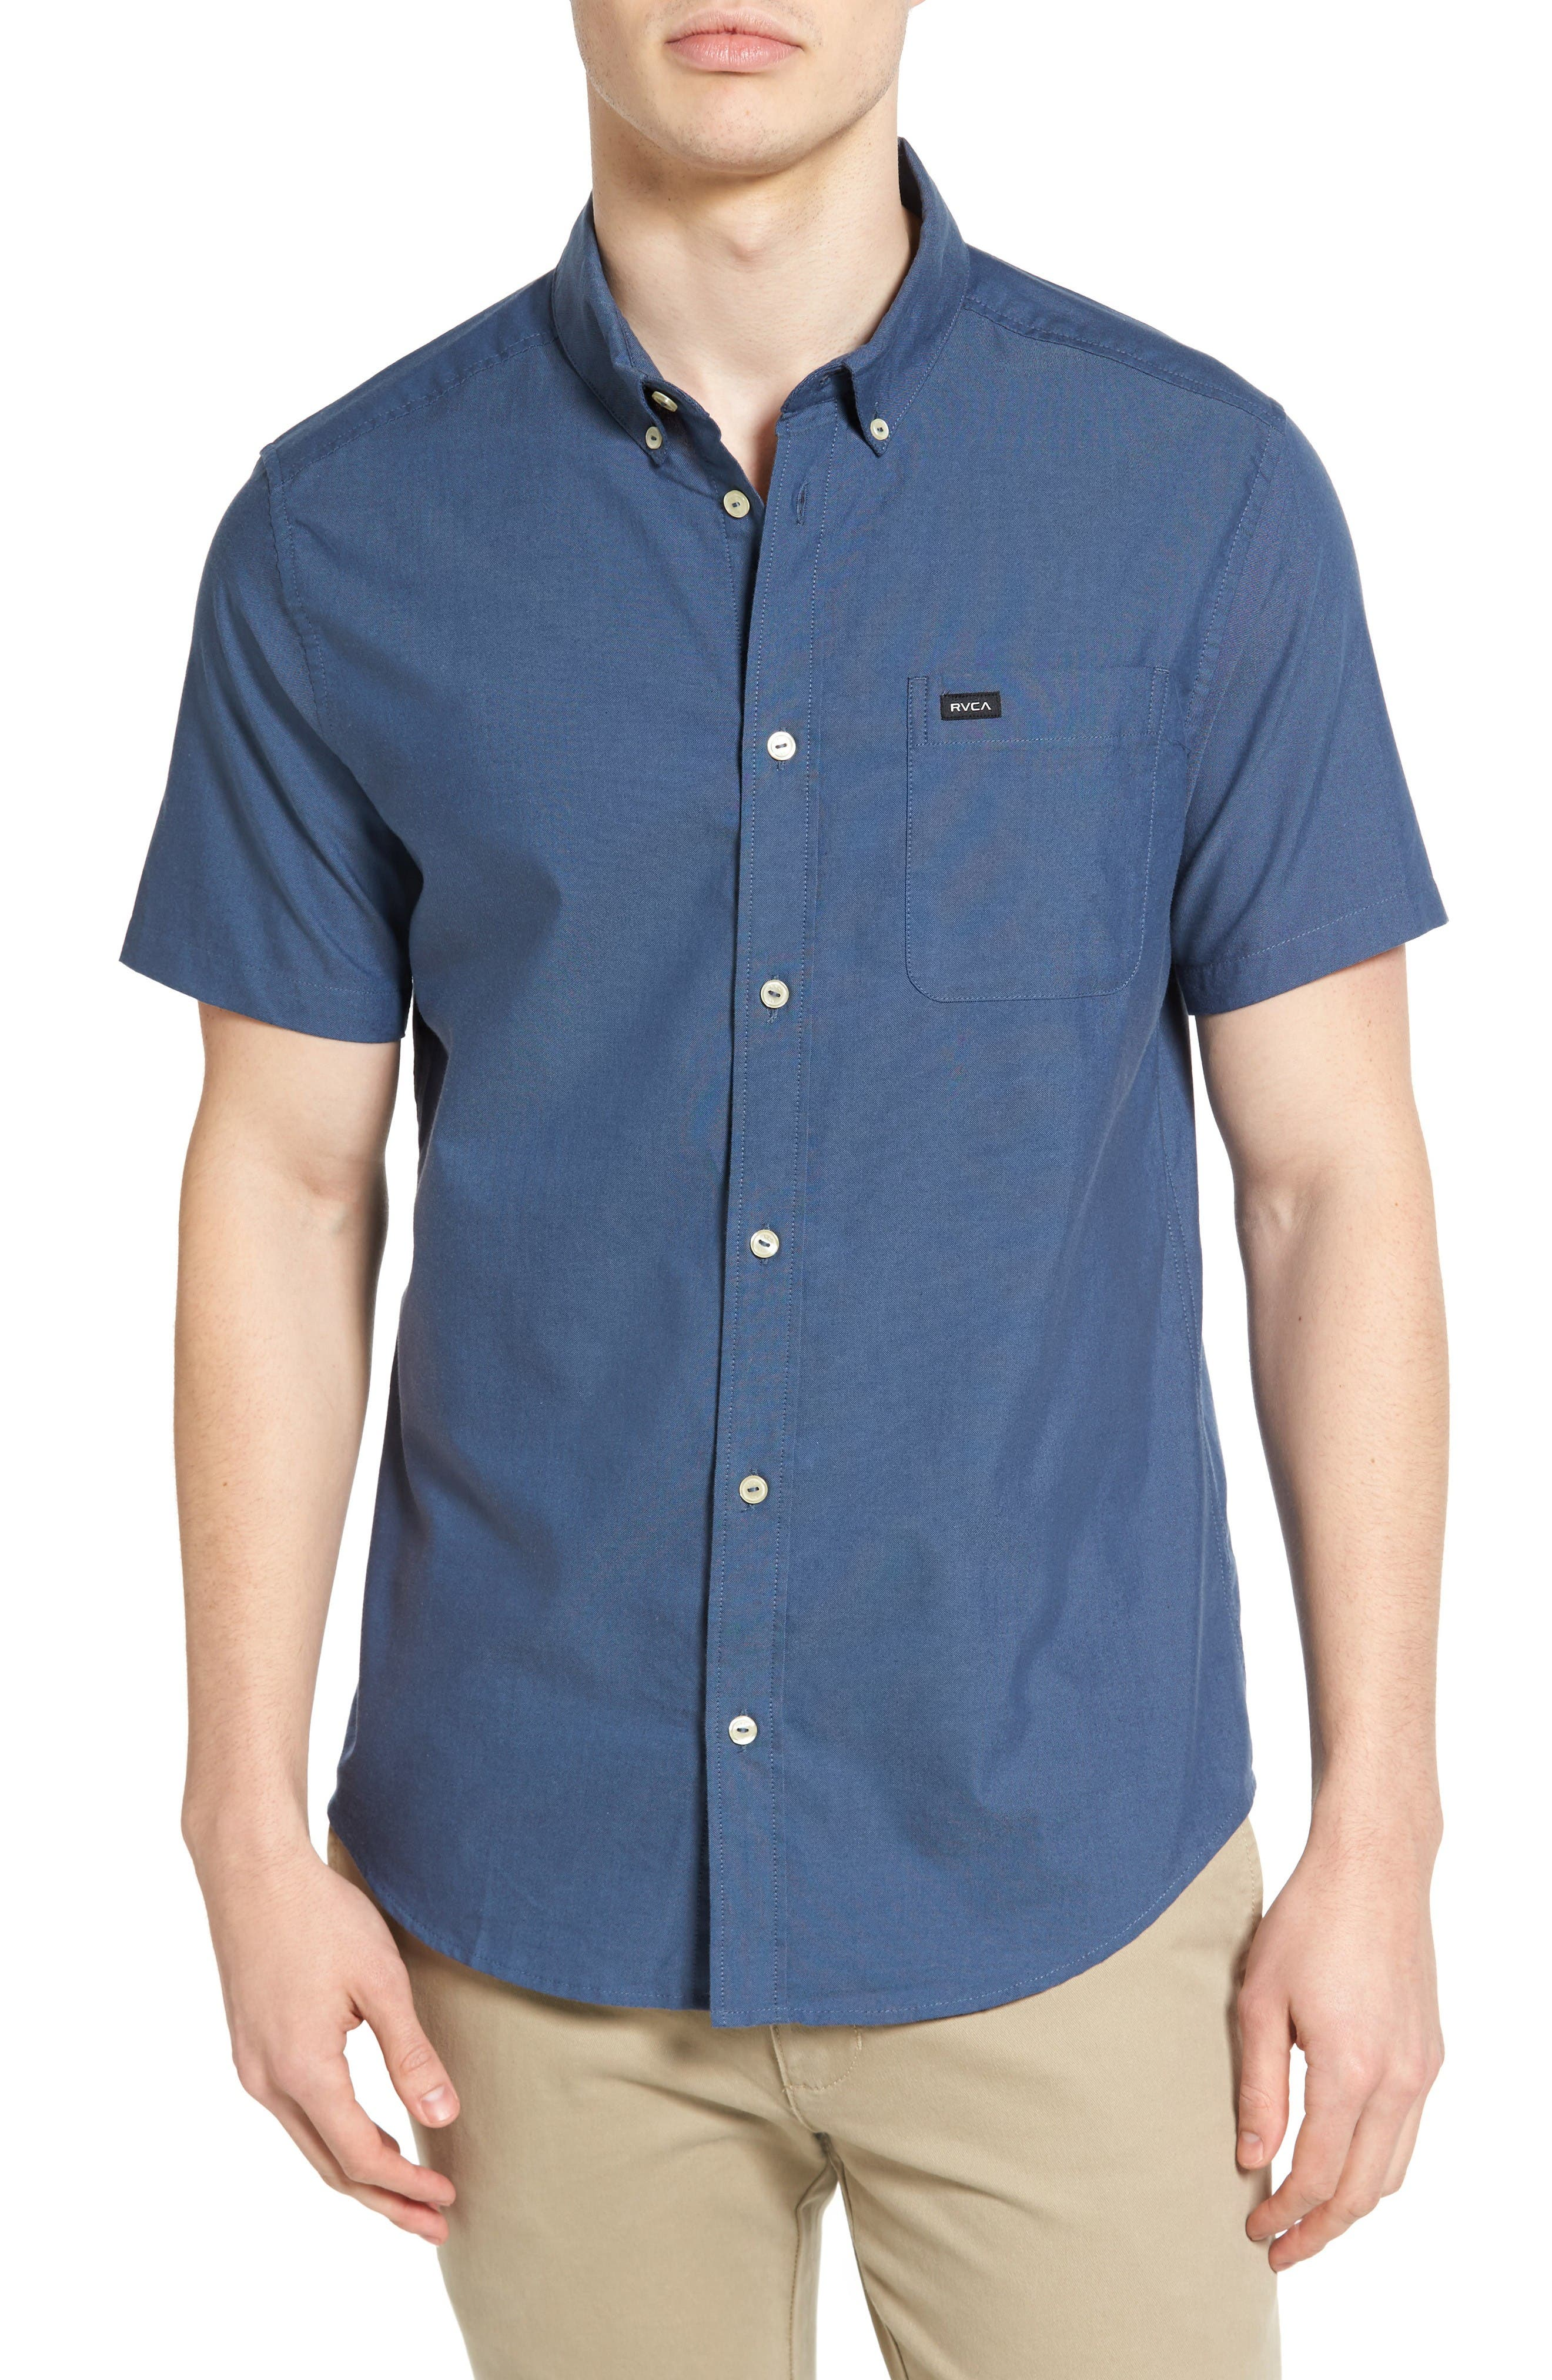 'That'll Do' Slim Fit Short Sleeve Oxford Shirt,                             Main thumbnail 1, color,                             Blue Slate